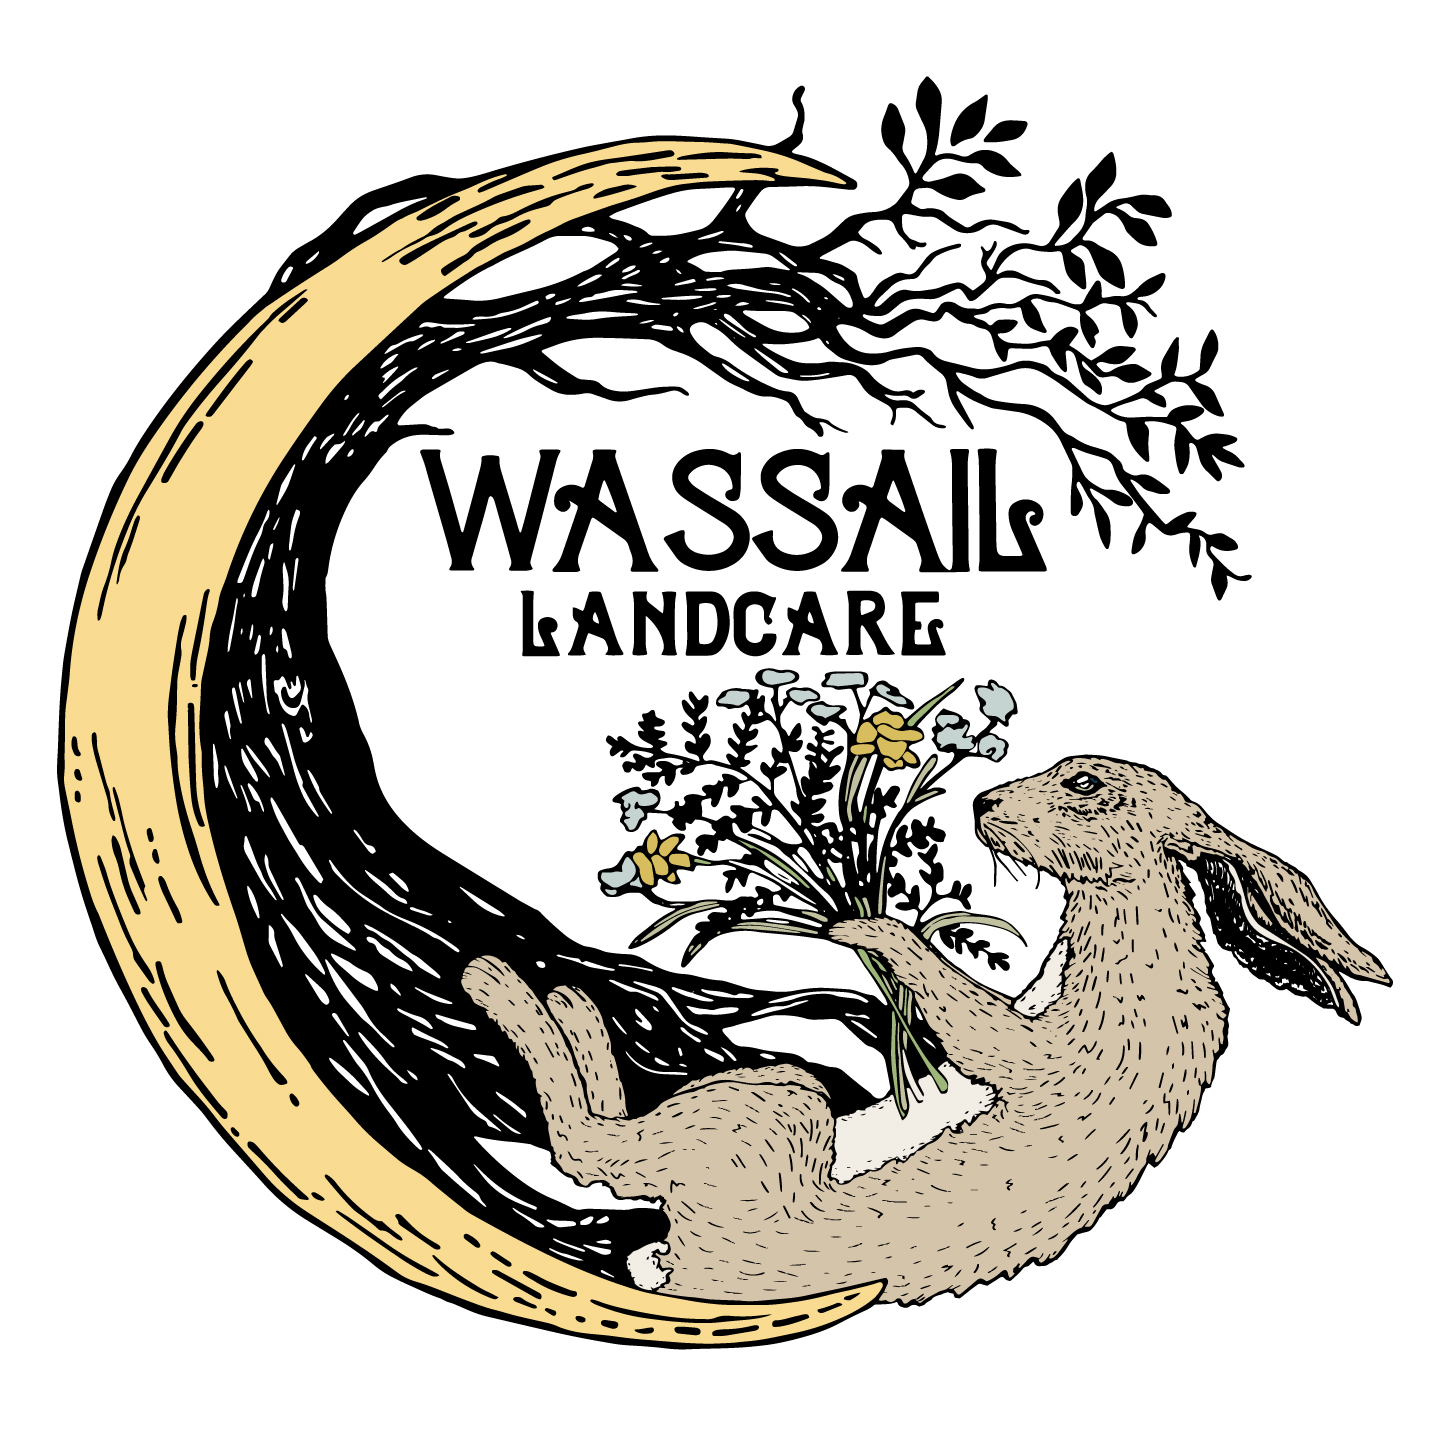 Wassail-Landcare-Full-Illustration-Logo-COLOR-THEME-NEUTRAL-Hare&Moon-TRANSPARENT.jpg